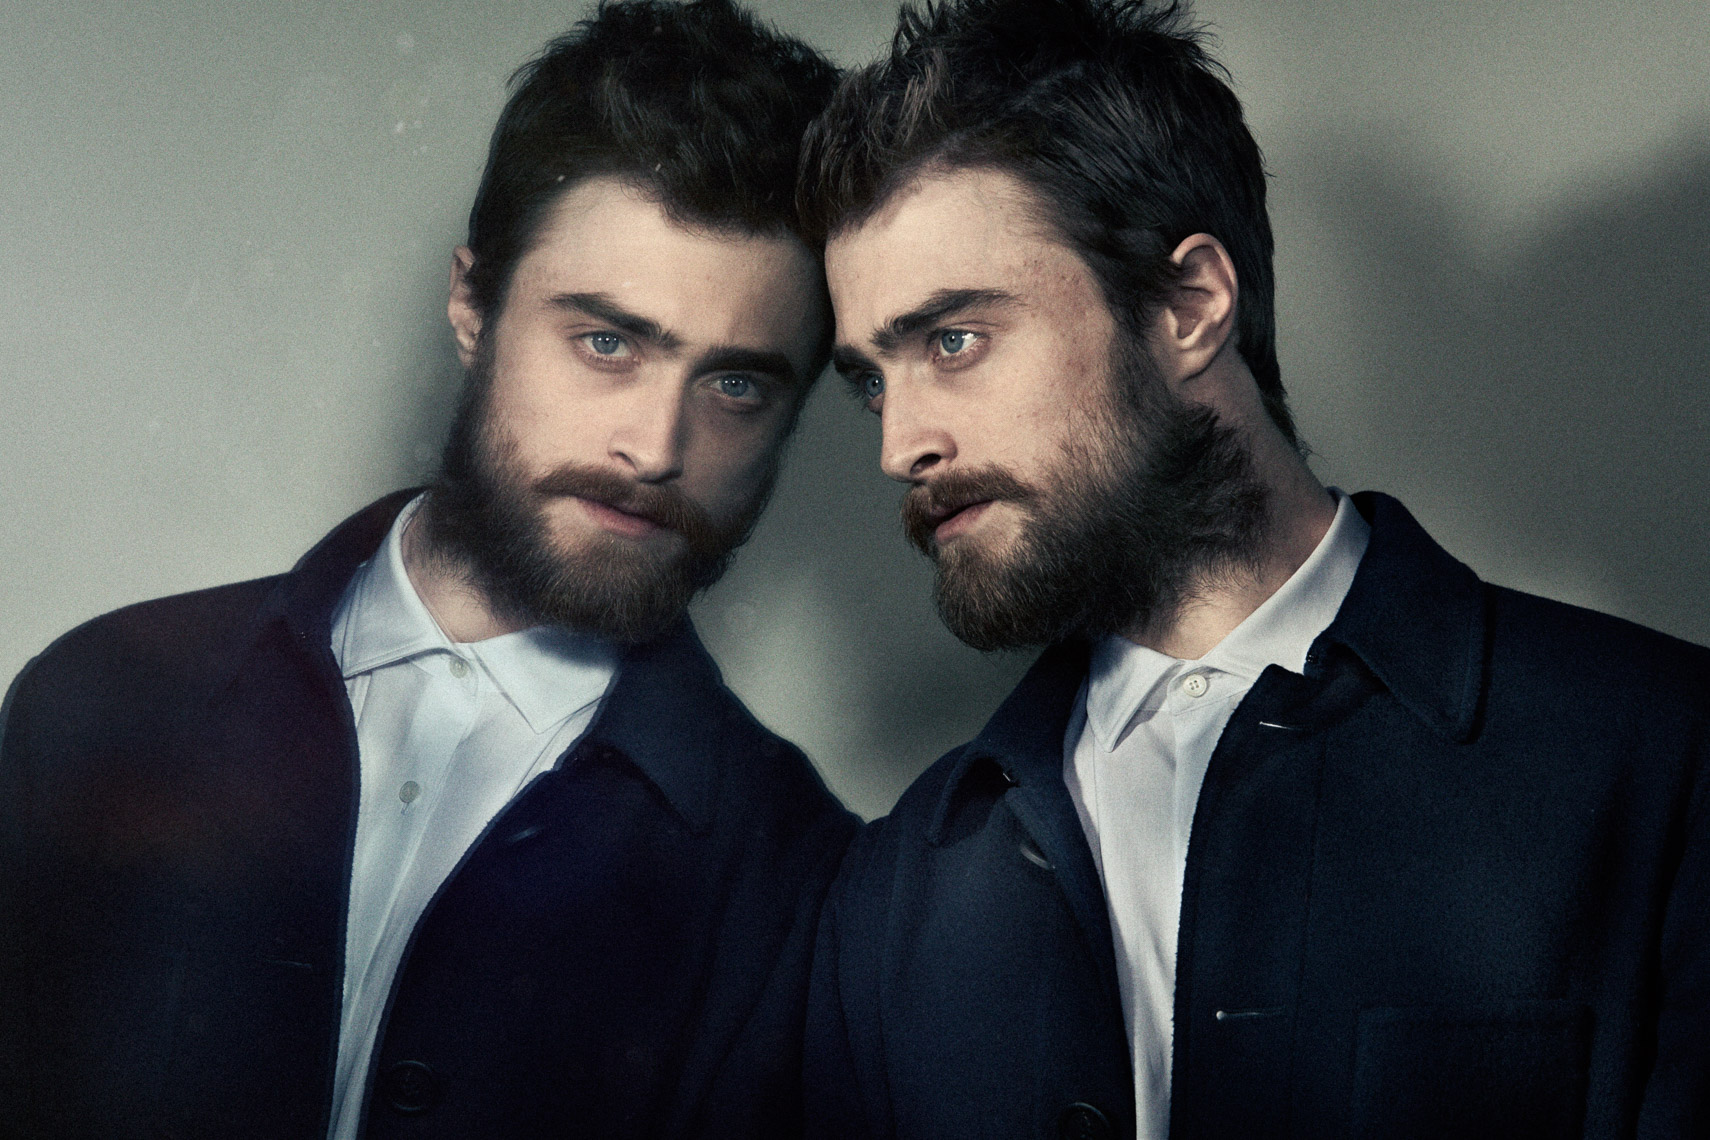 Daniel Radcliffe Double Shot by The Saint